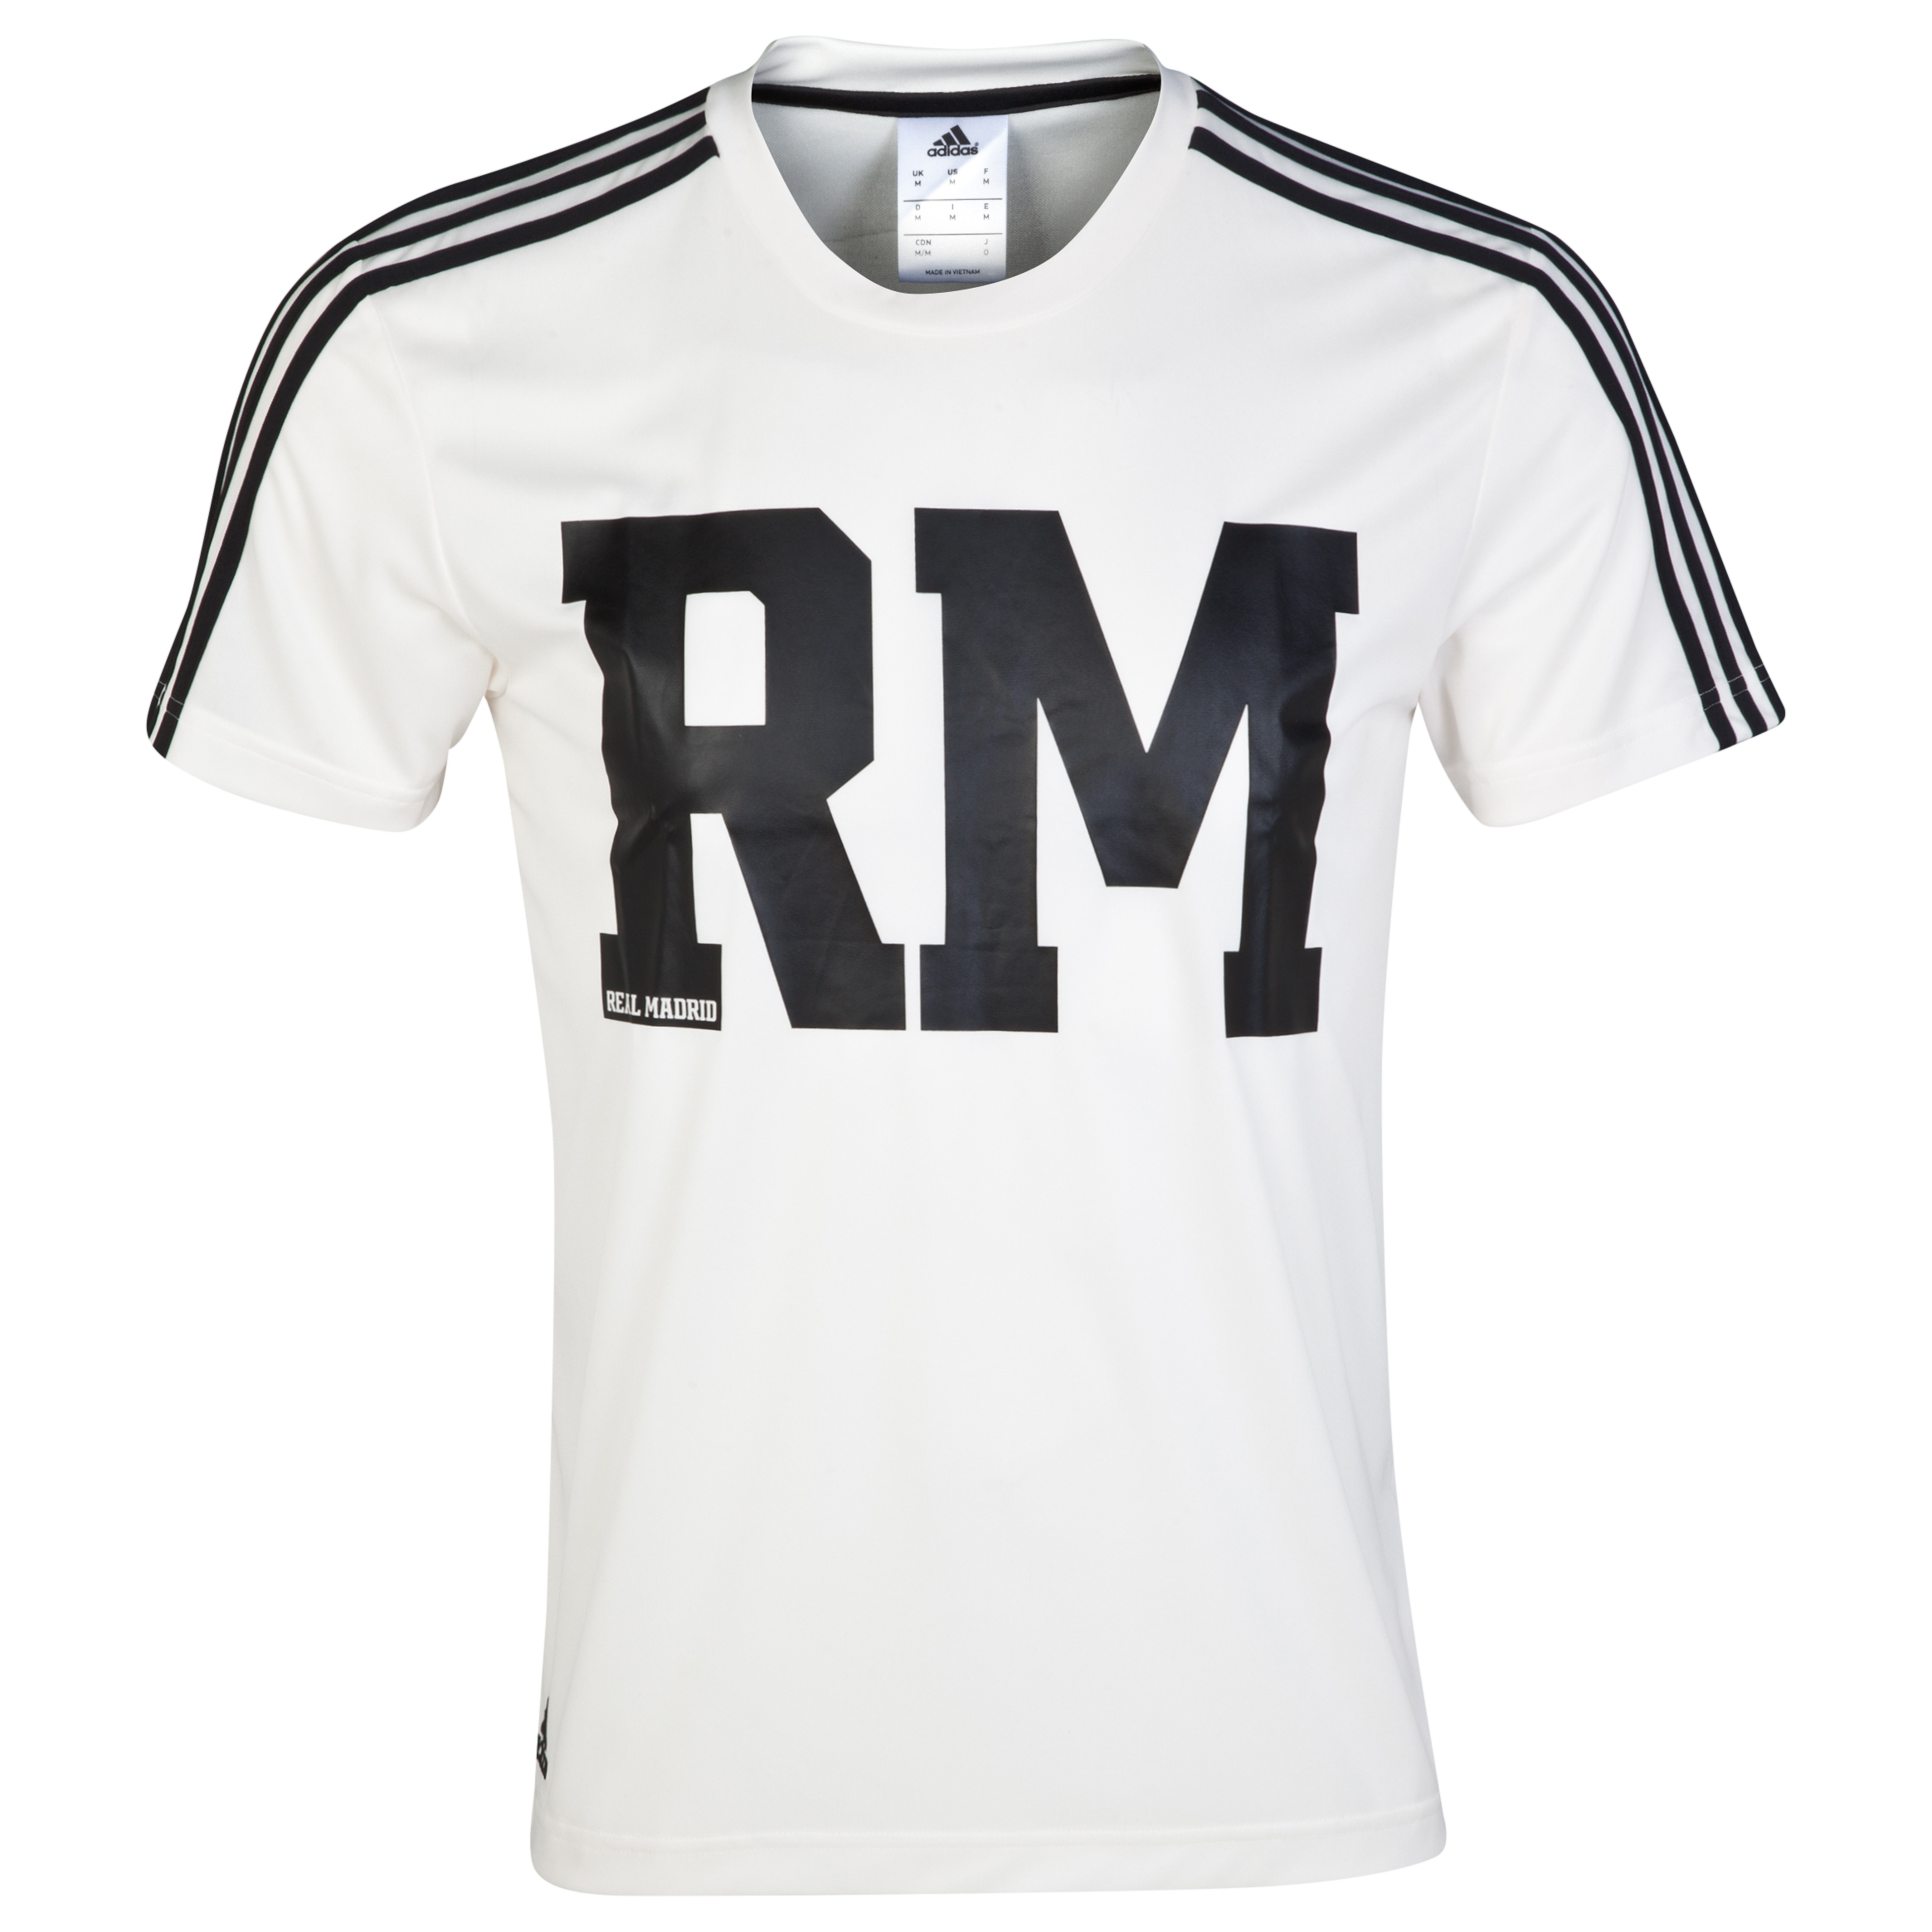 Real Madrid Core Pes T-Shirt